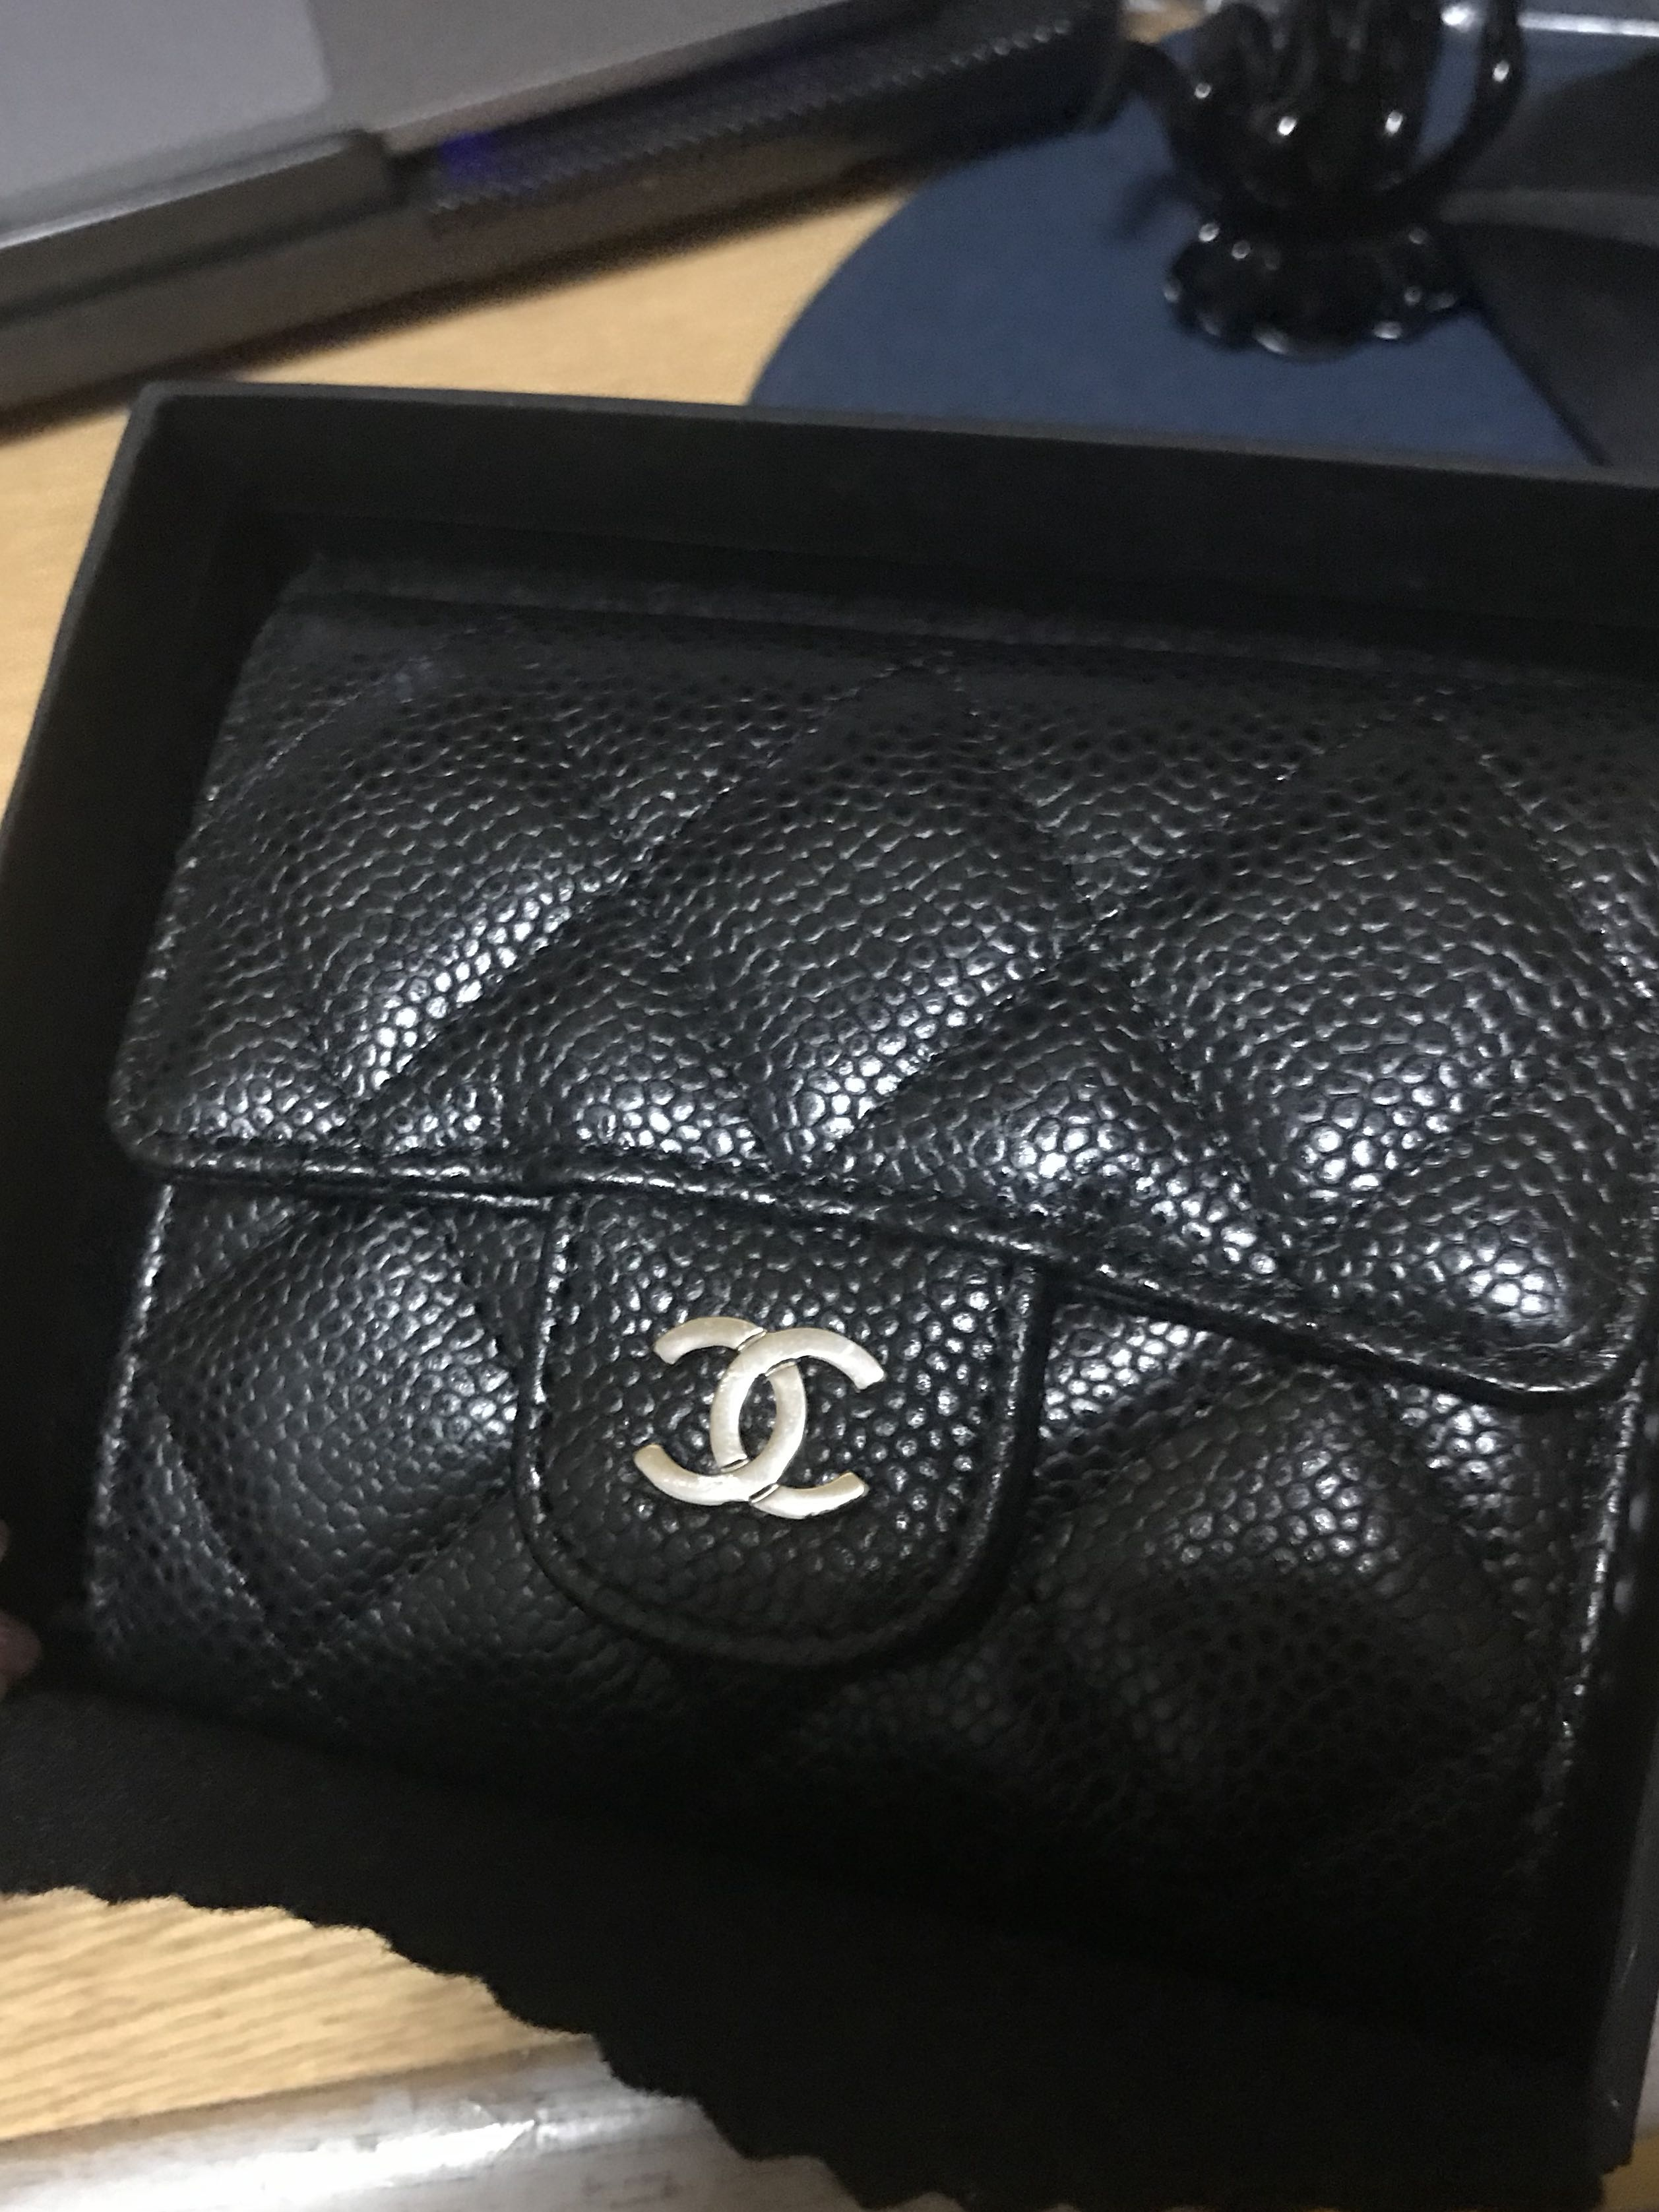 0b197d15d37d Chanel Card Holder, Luxury, Bags & Wallets, Wallets on Carousell